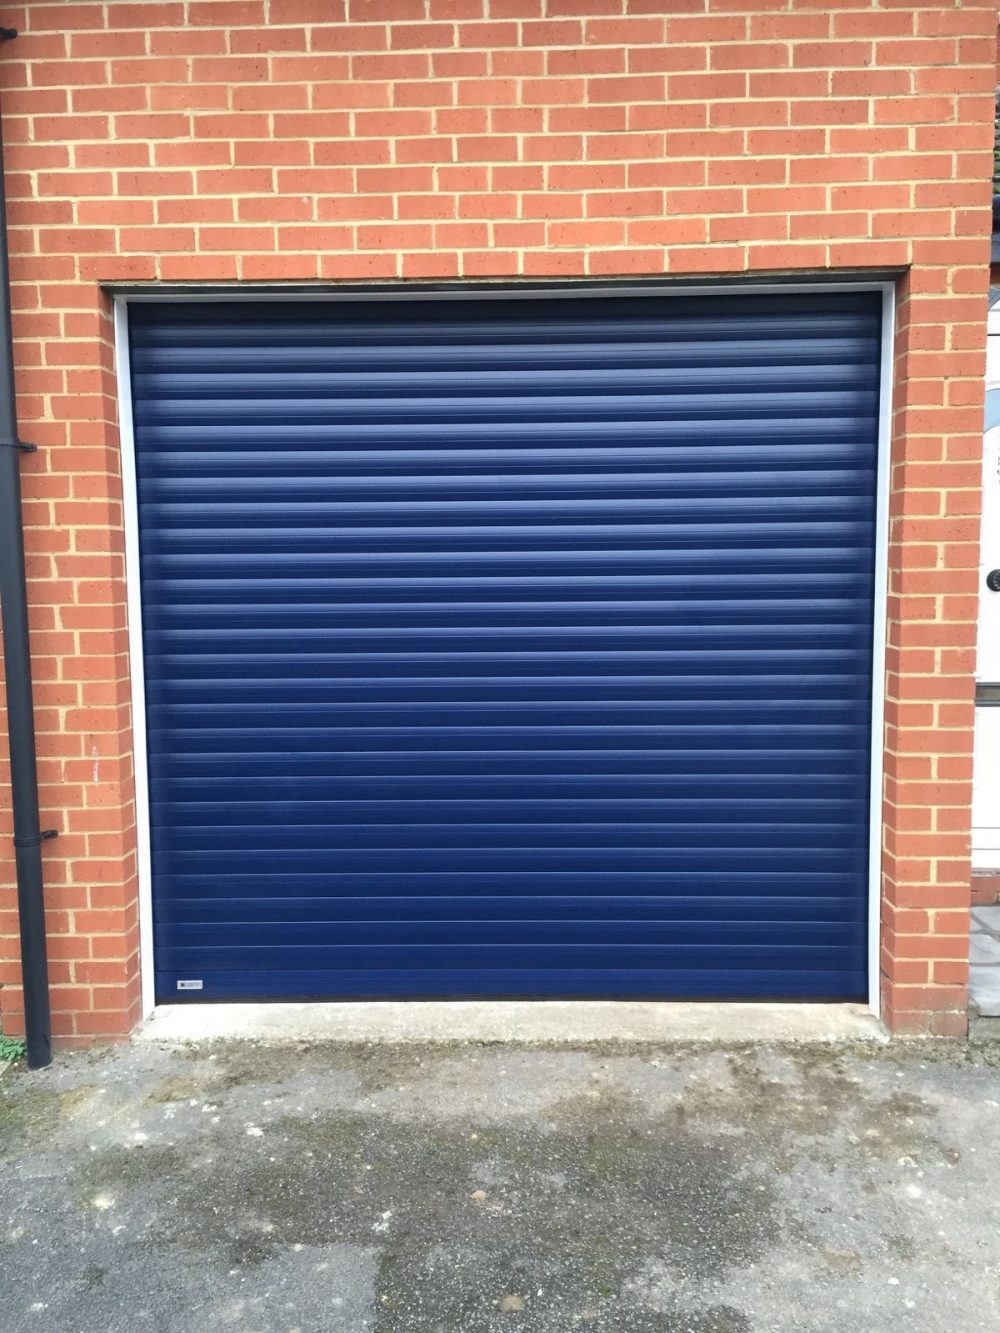 seceuroglide roller garage door thame fitted in Thame, Oxfordshire by Shutter Spec Security